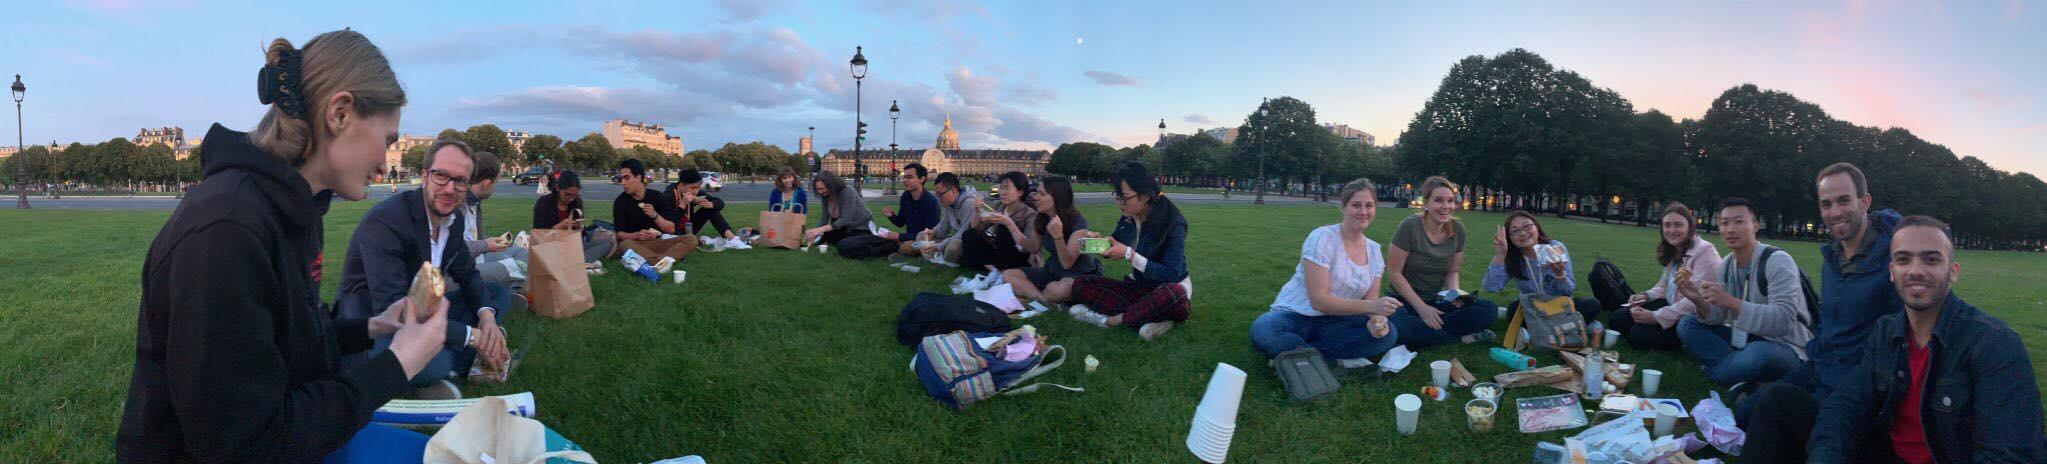 Aside from science, we had a great gathering picnic in front of the Invalides with Dr. Emma MacPherson's group from Warwick, UK, and our friends from Syracuse, US.